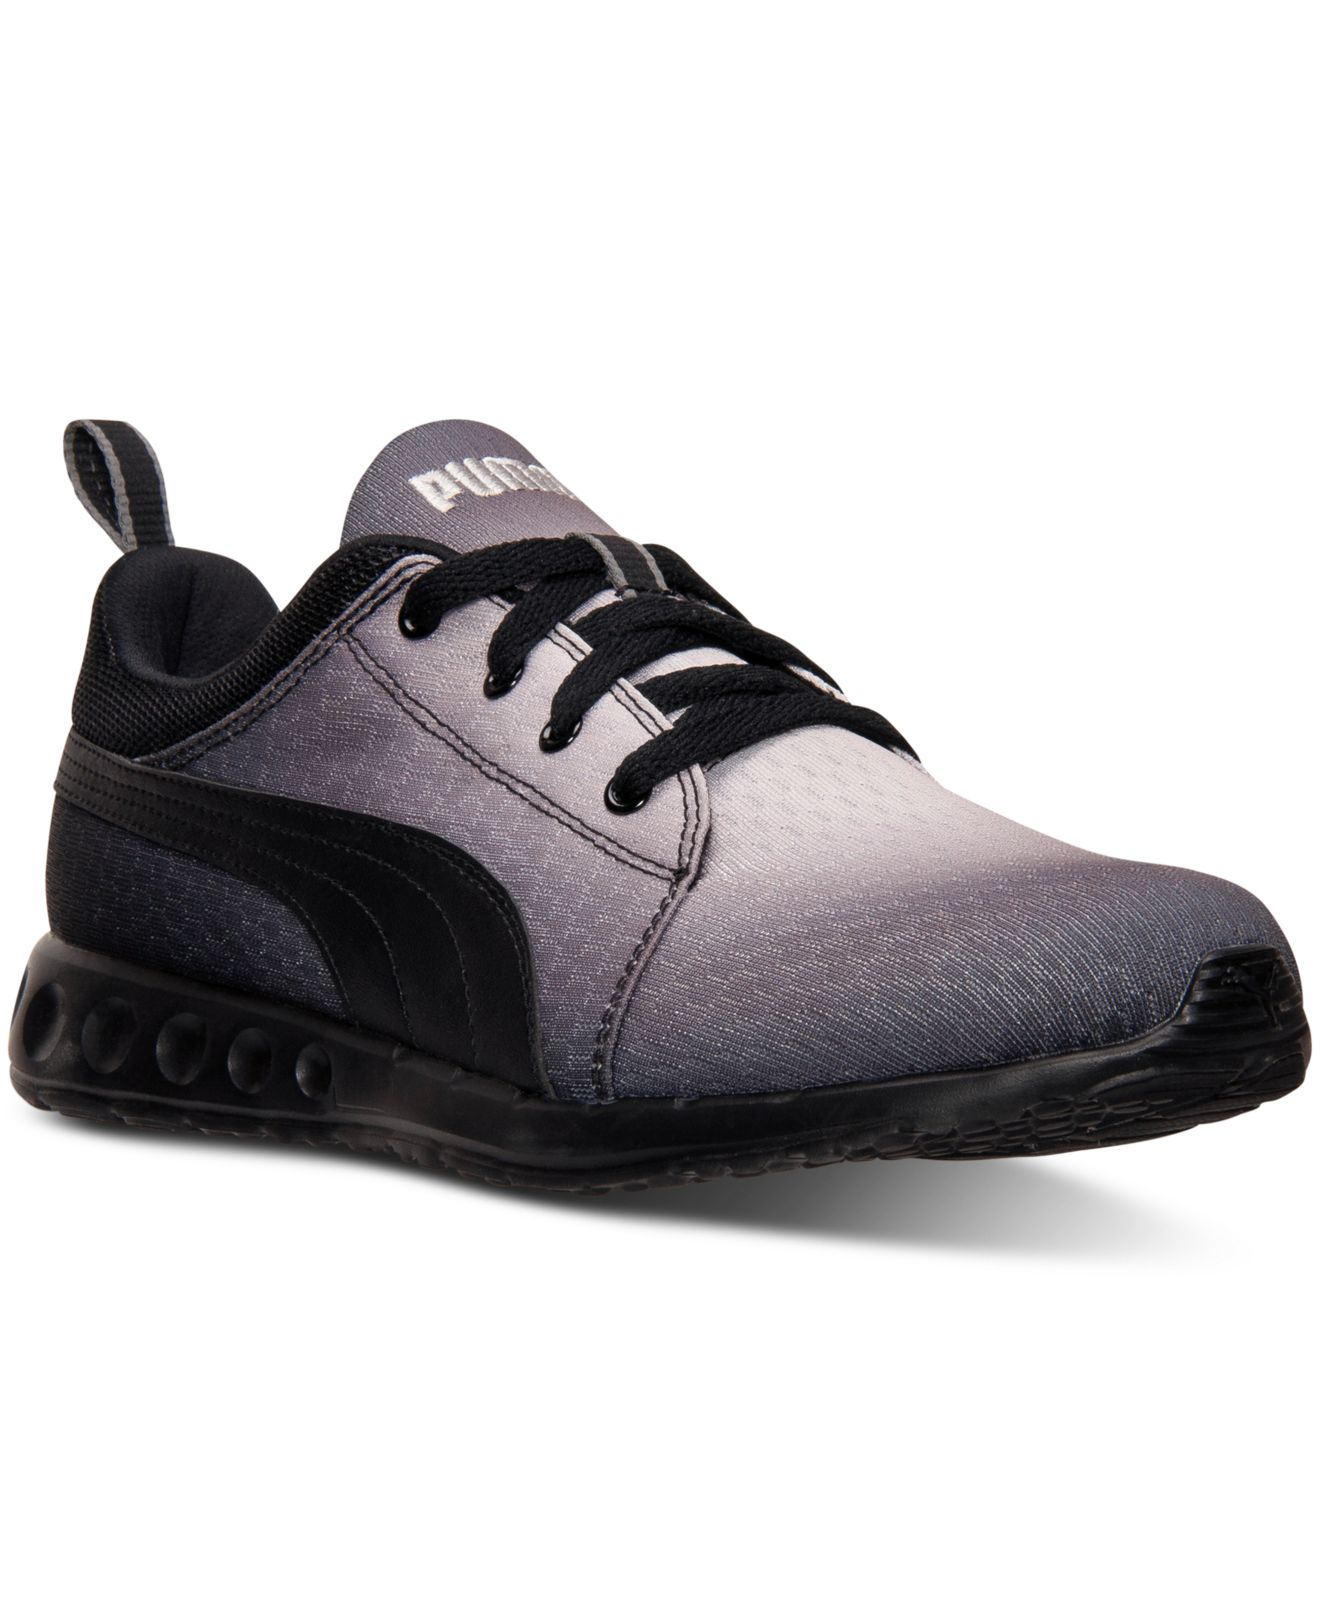 puma men 39 s carson runner radial fade casual sneakers from. Black Bedroom Furniture Sets. Home Design Ideas